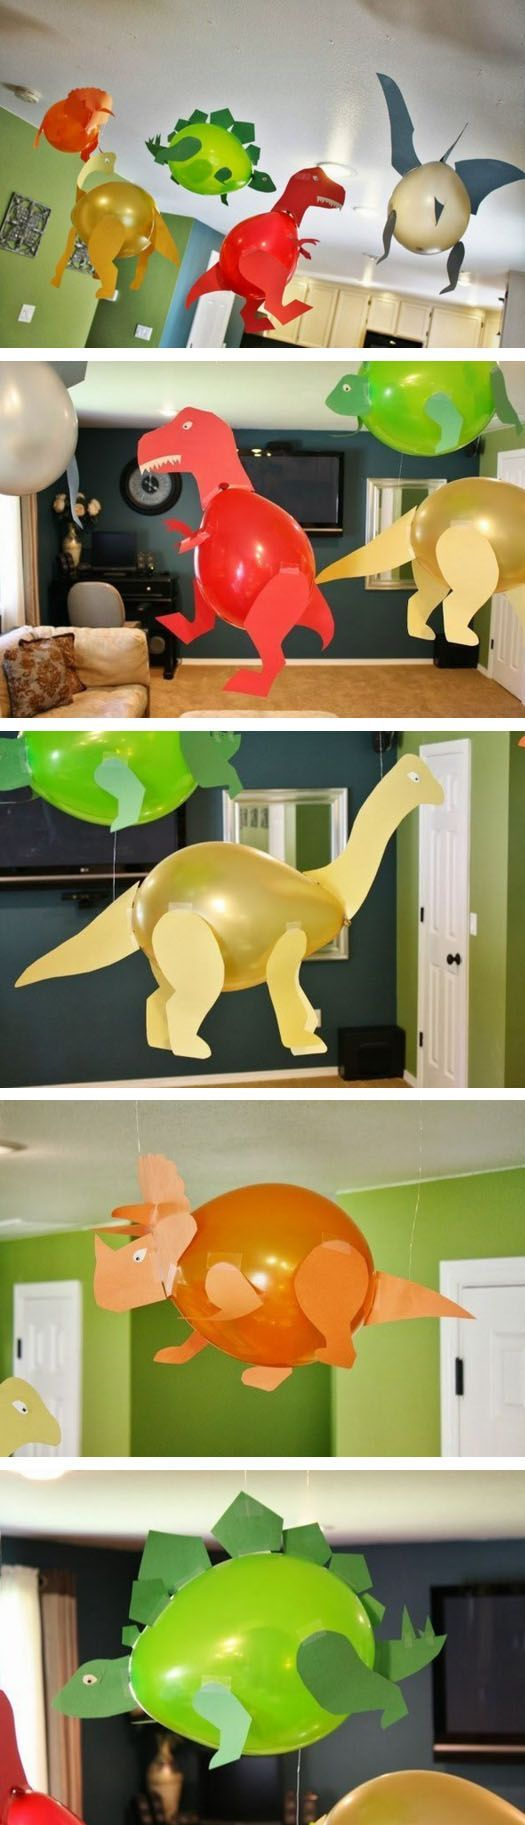 Ballons ang paper is all you need to make home decor for kids party #art #inspi